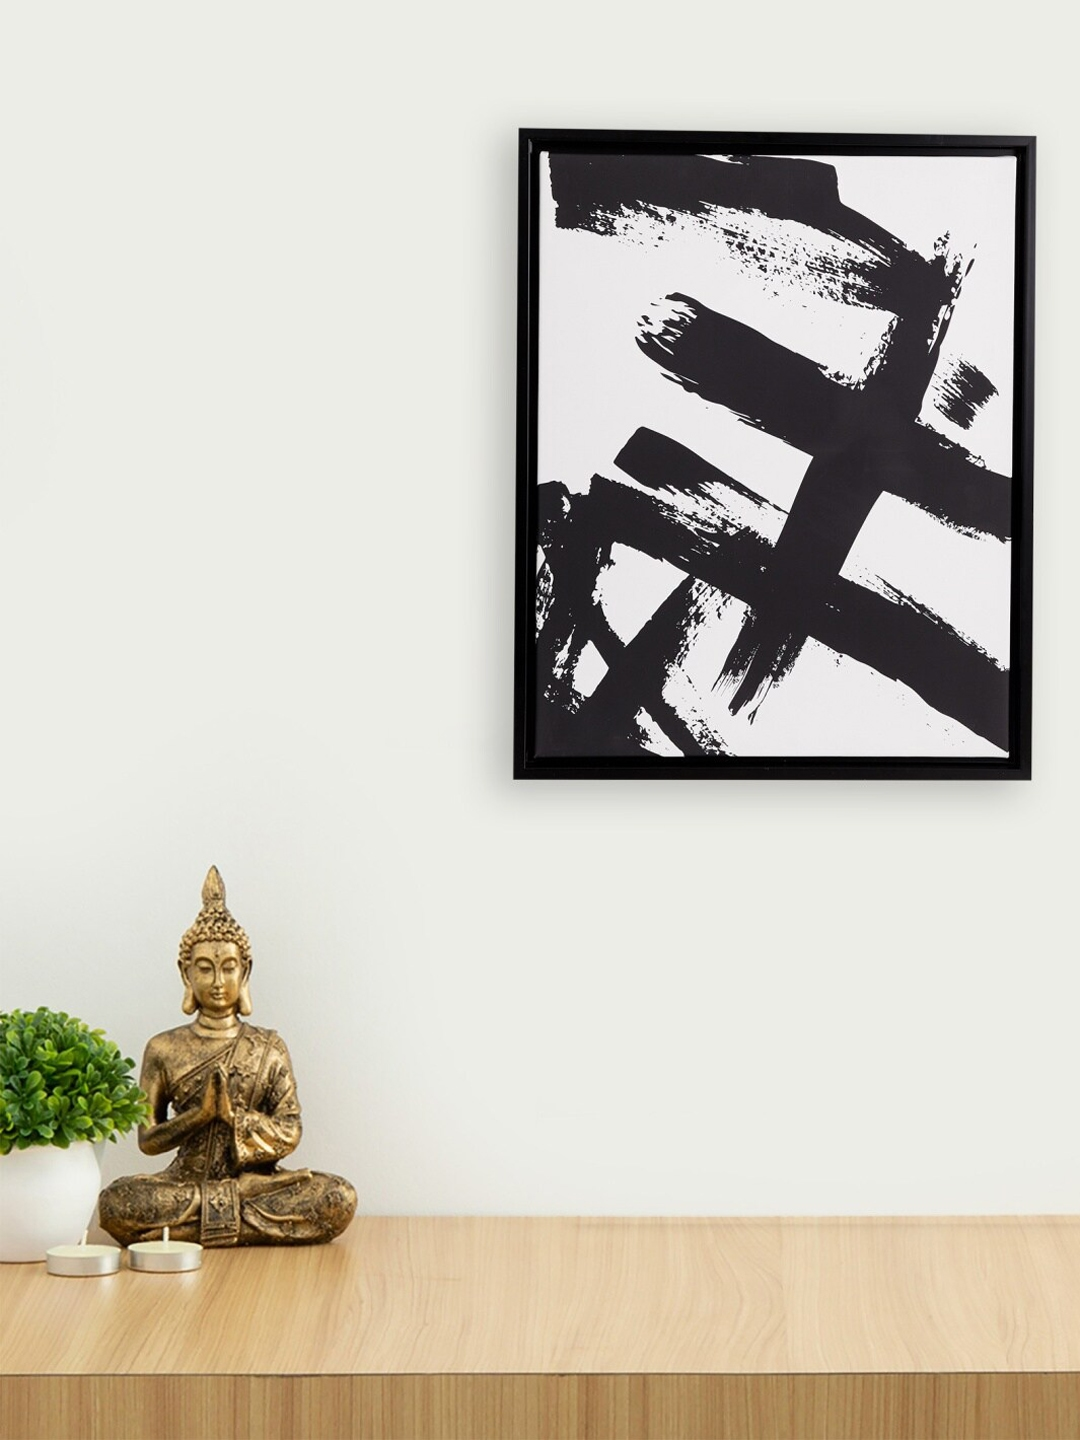 Homecentre Black 1 Picture Frame Artistry Abstract Brush Stroke Picture Frame   40 x 50 cm